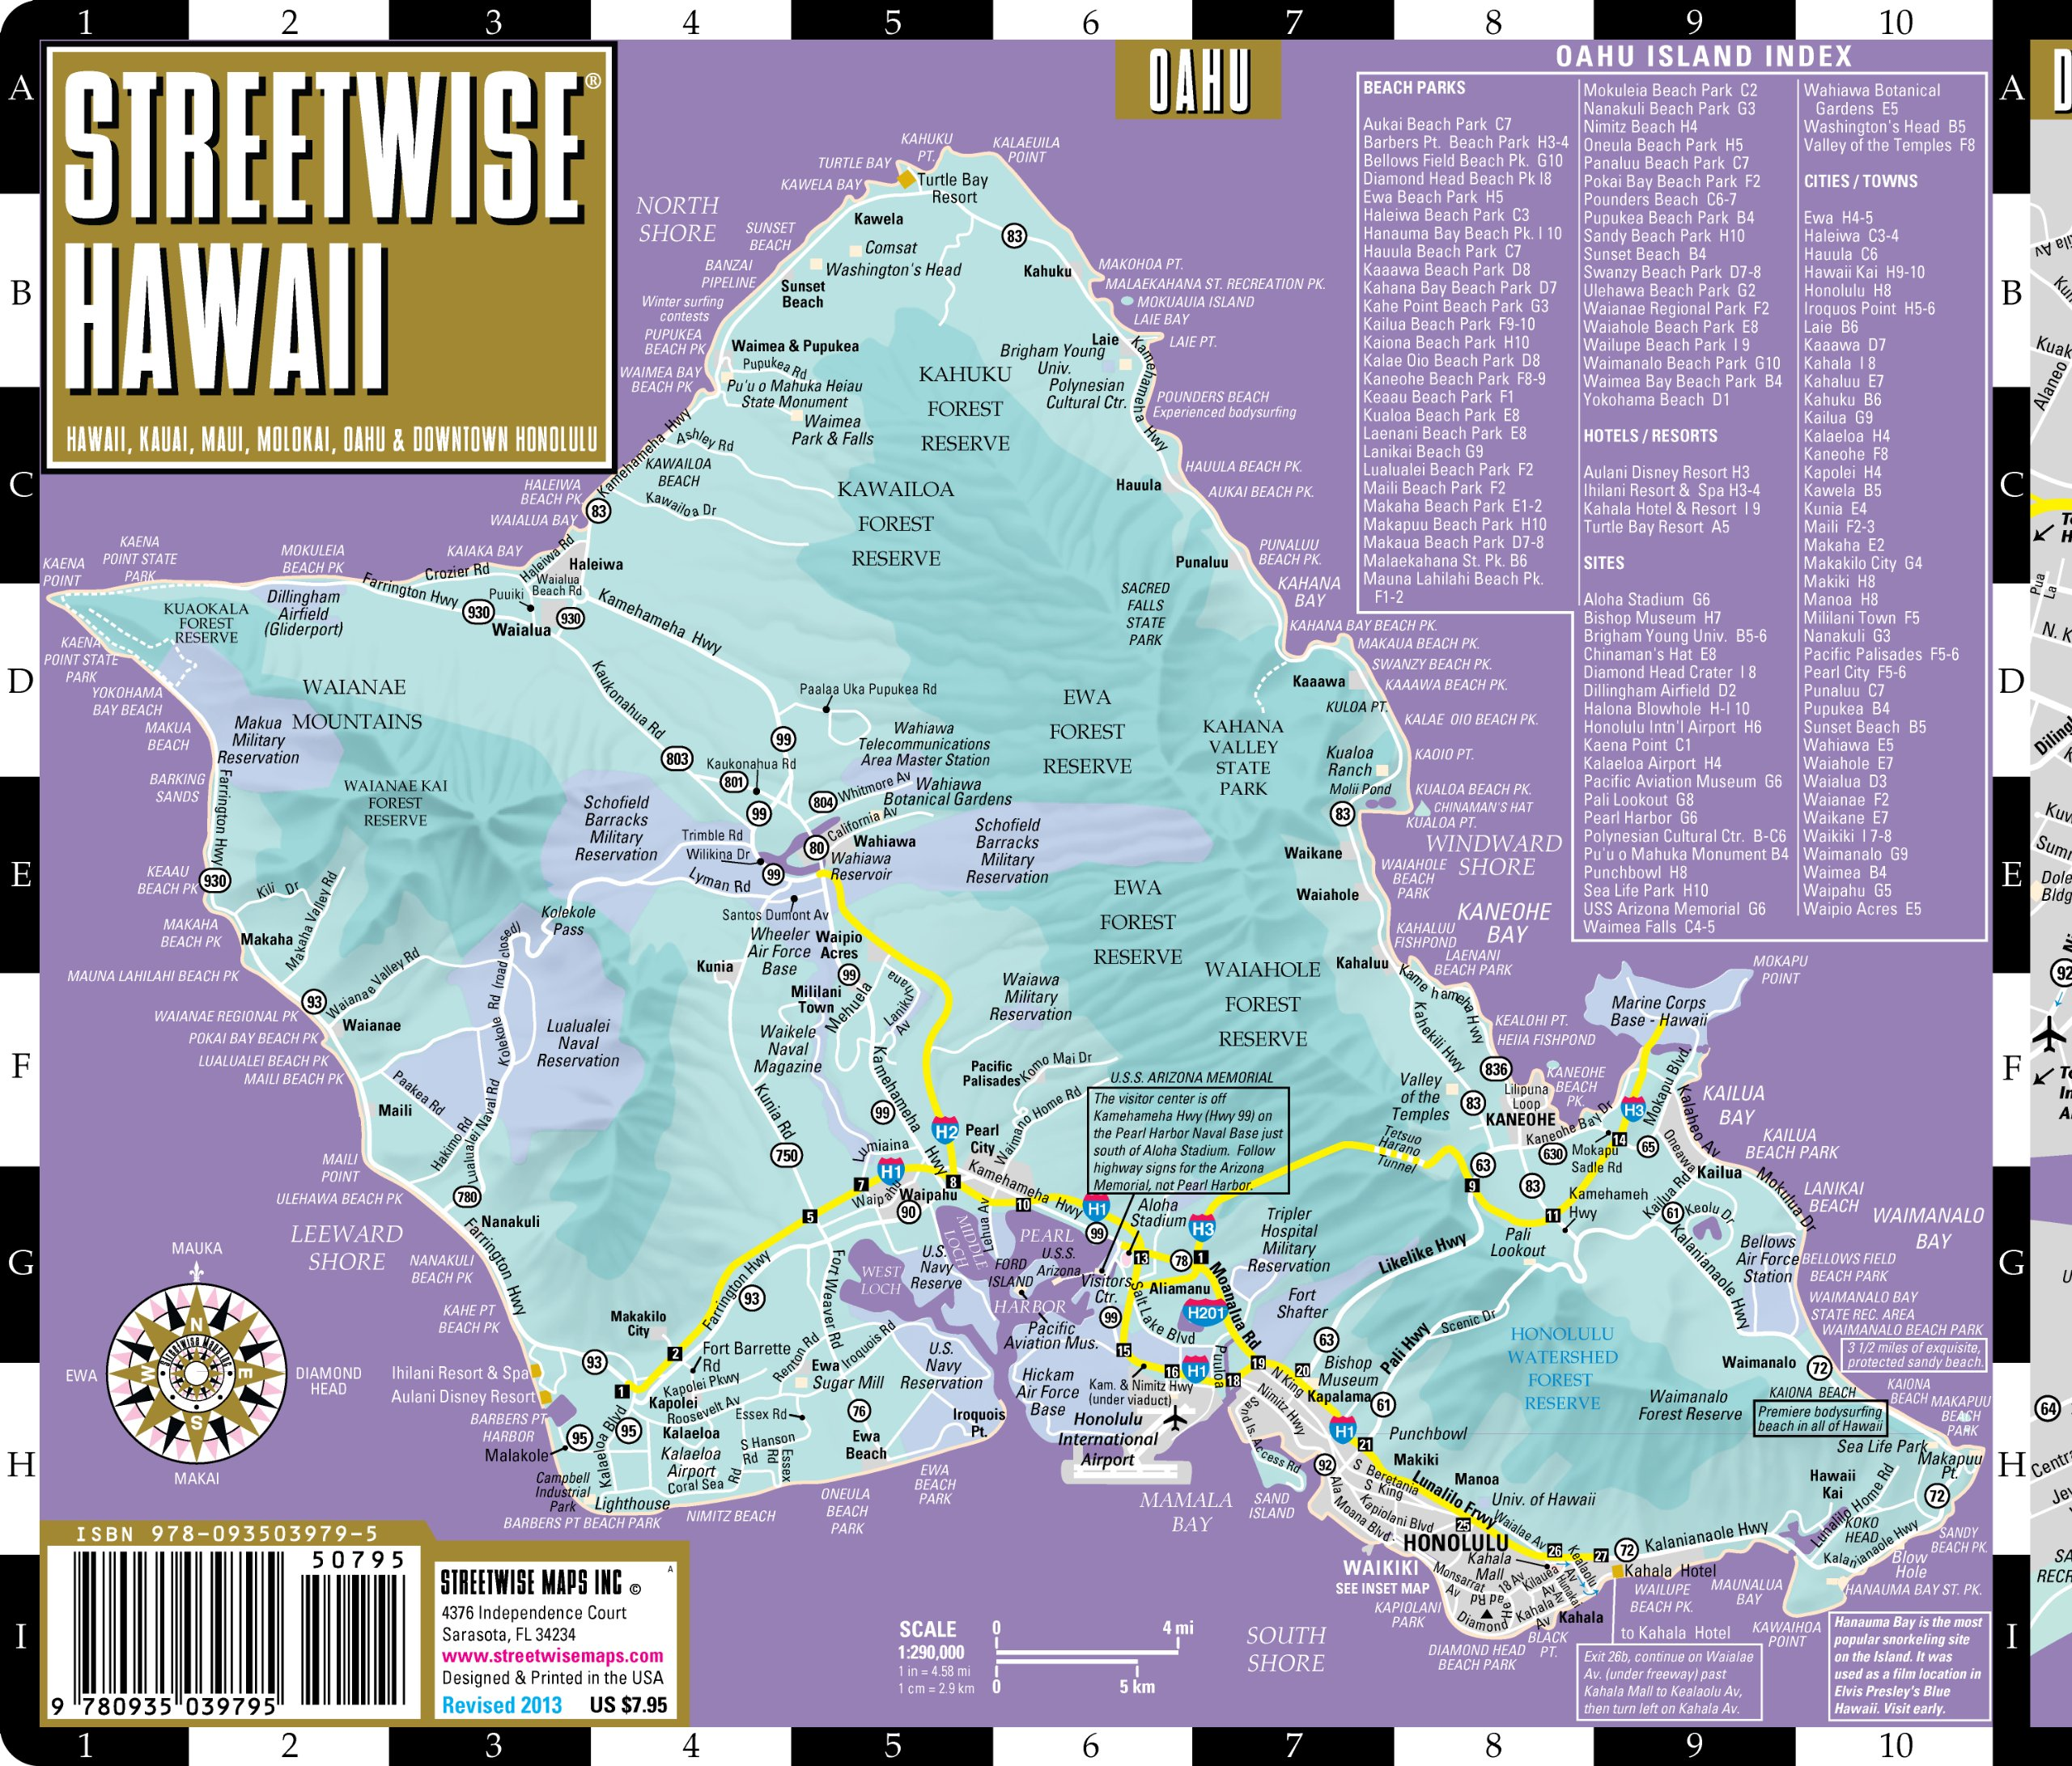 Streetwise Hawaii Map Laminated State Road Map Of Hawaii - Road map of hawaii